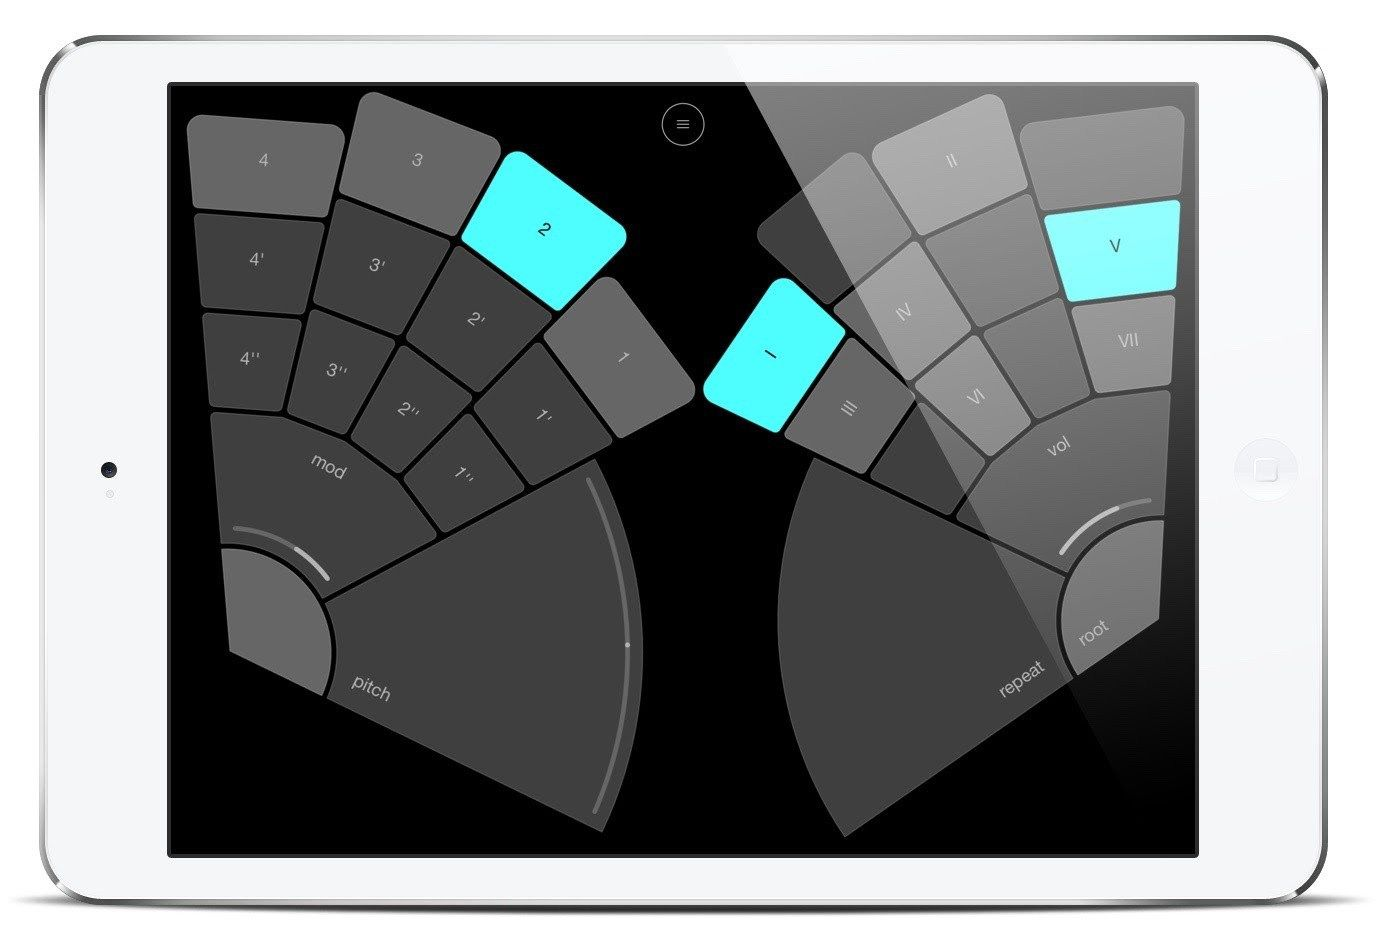 Clawtar is a musical instrument and MIDI controller app for iPad that adapts to your hands, instead of making you adapt to a preset layout. Clawtar's adaptive interface allows you to position…